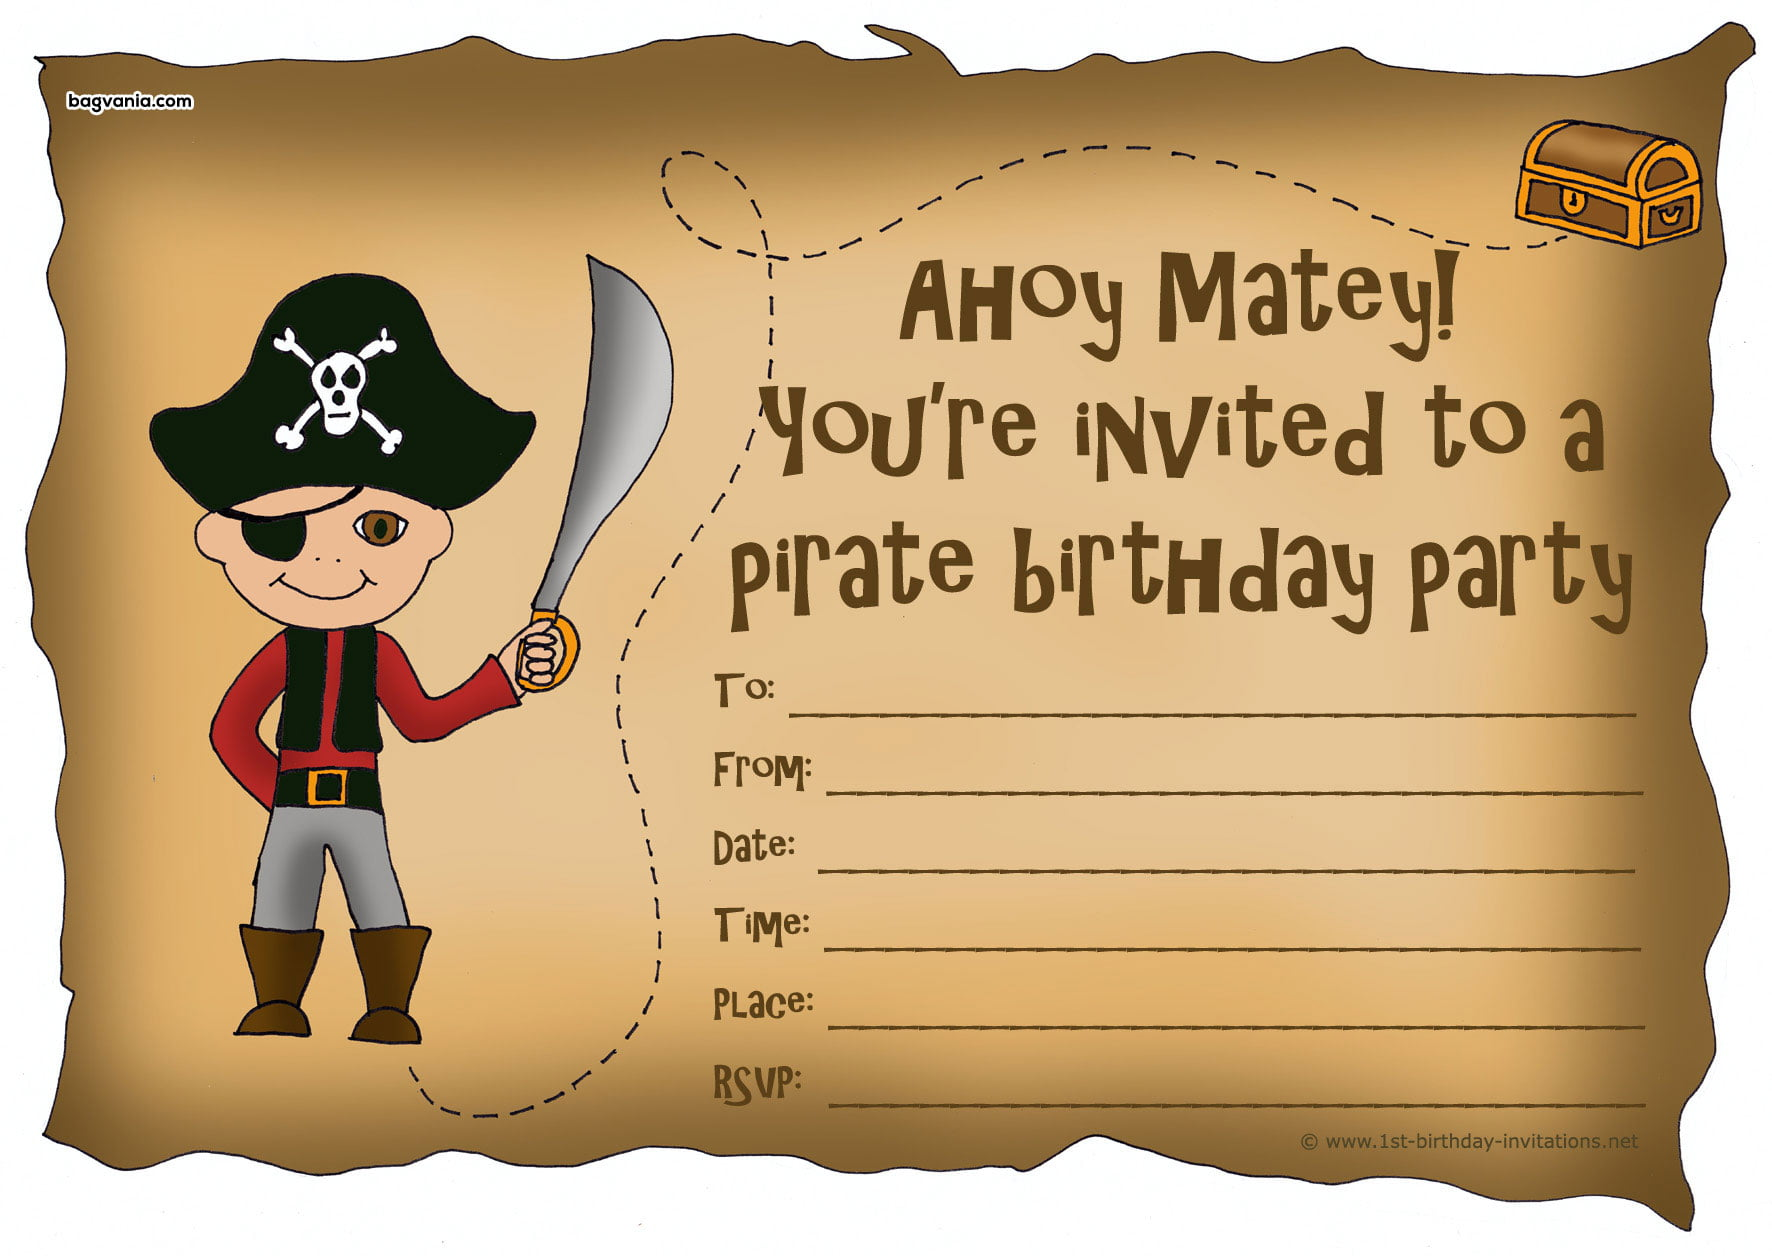 Home Design Layout Templates Pirates Birthday Invitations Bagvania Free Printable